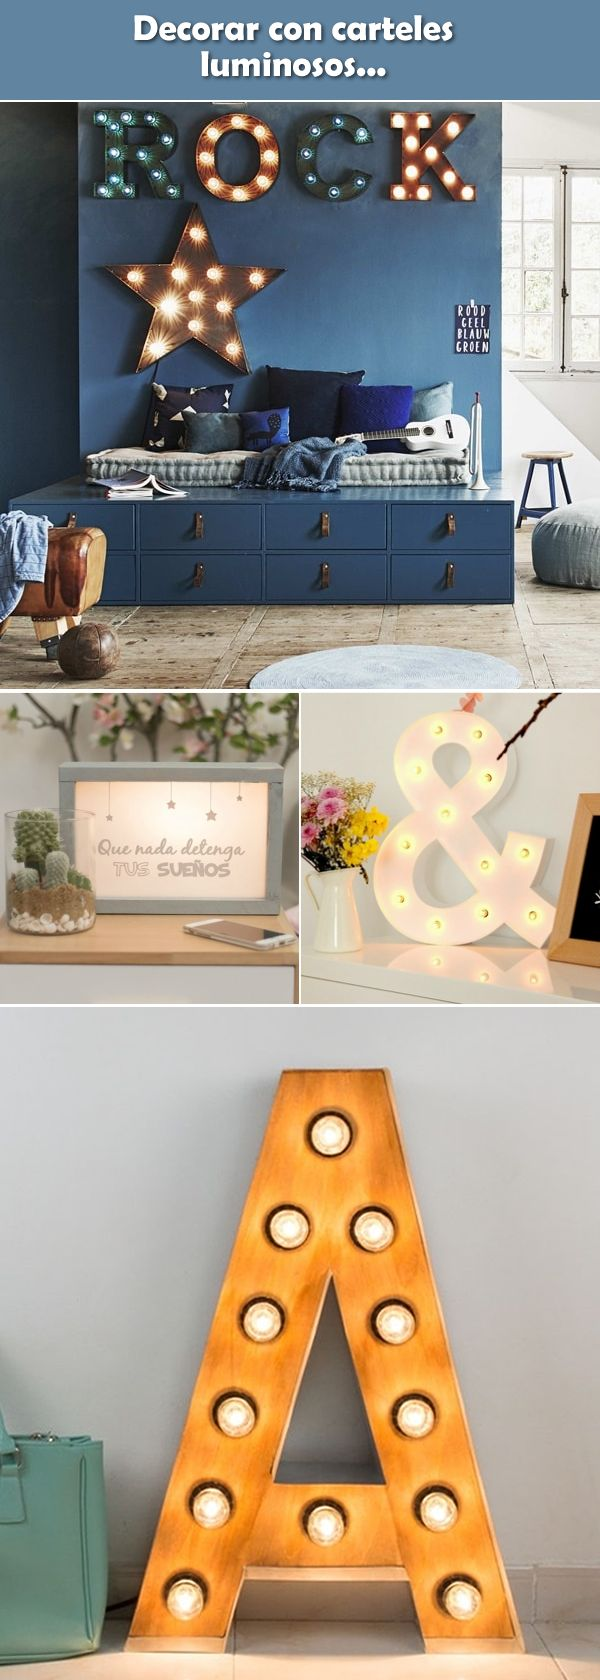 Decoración con carteles luminosos. Ideas para decorar con letreros luminosos.